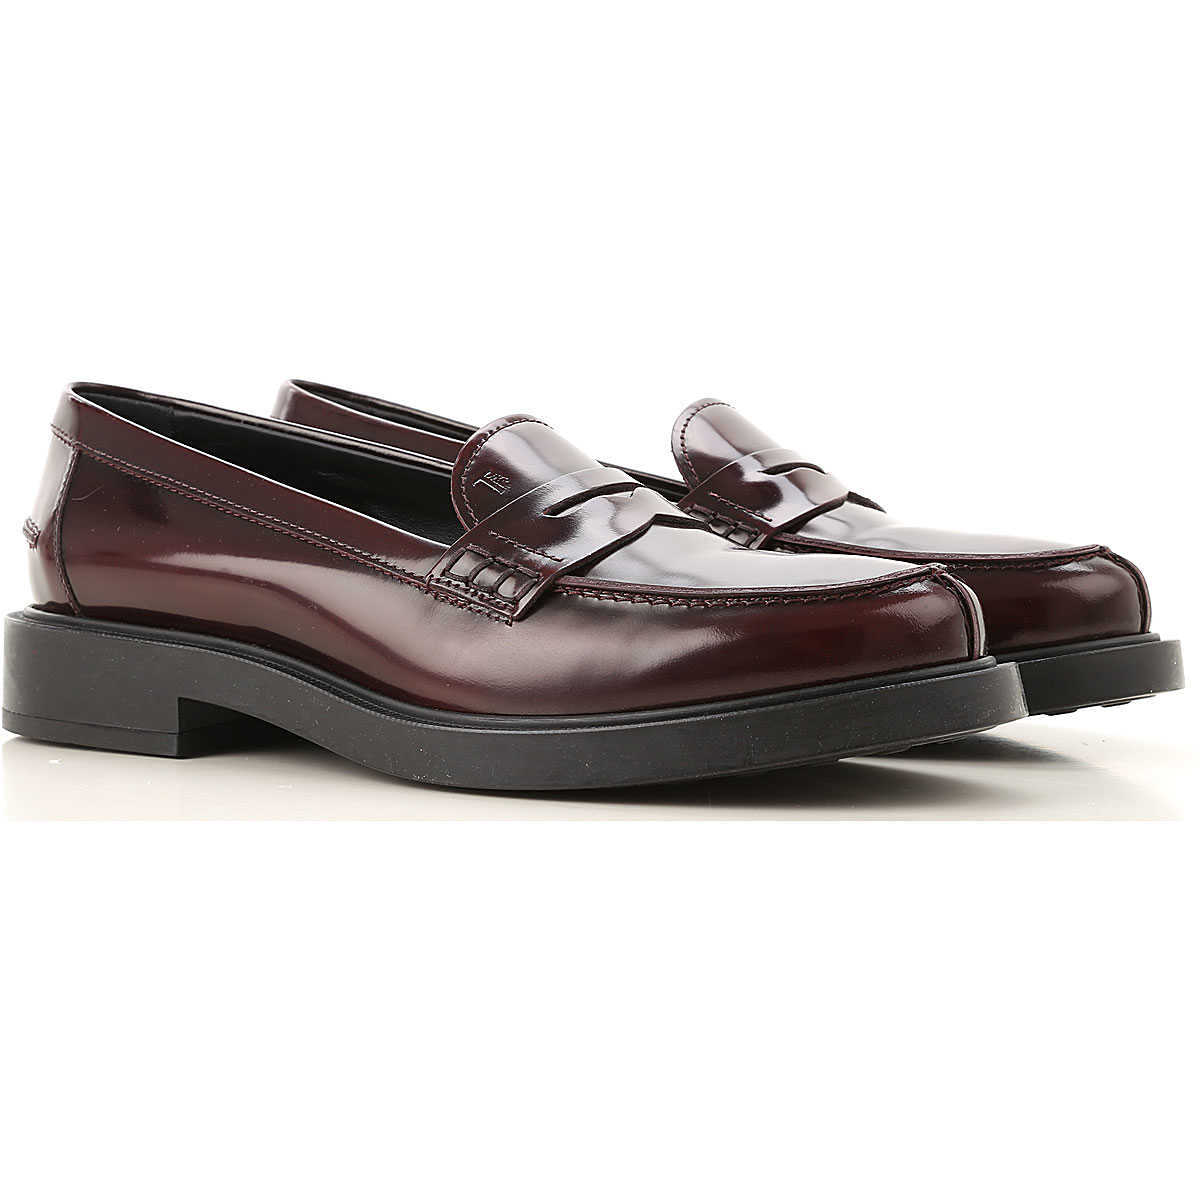 Tods Loafers for Women Bordeaux Canada - GOOFASH - Womens FLAT SHOES